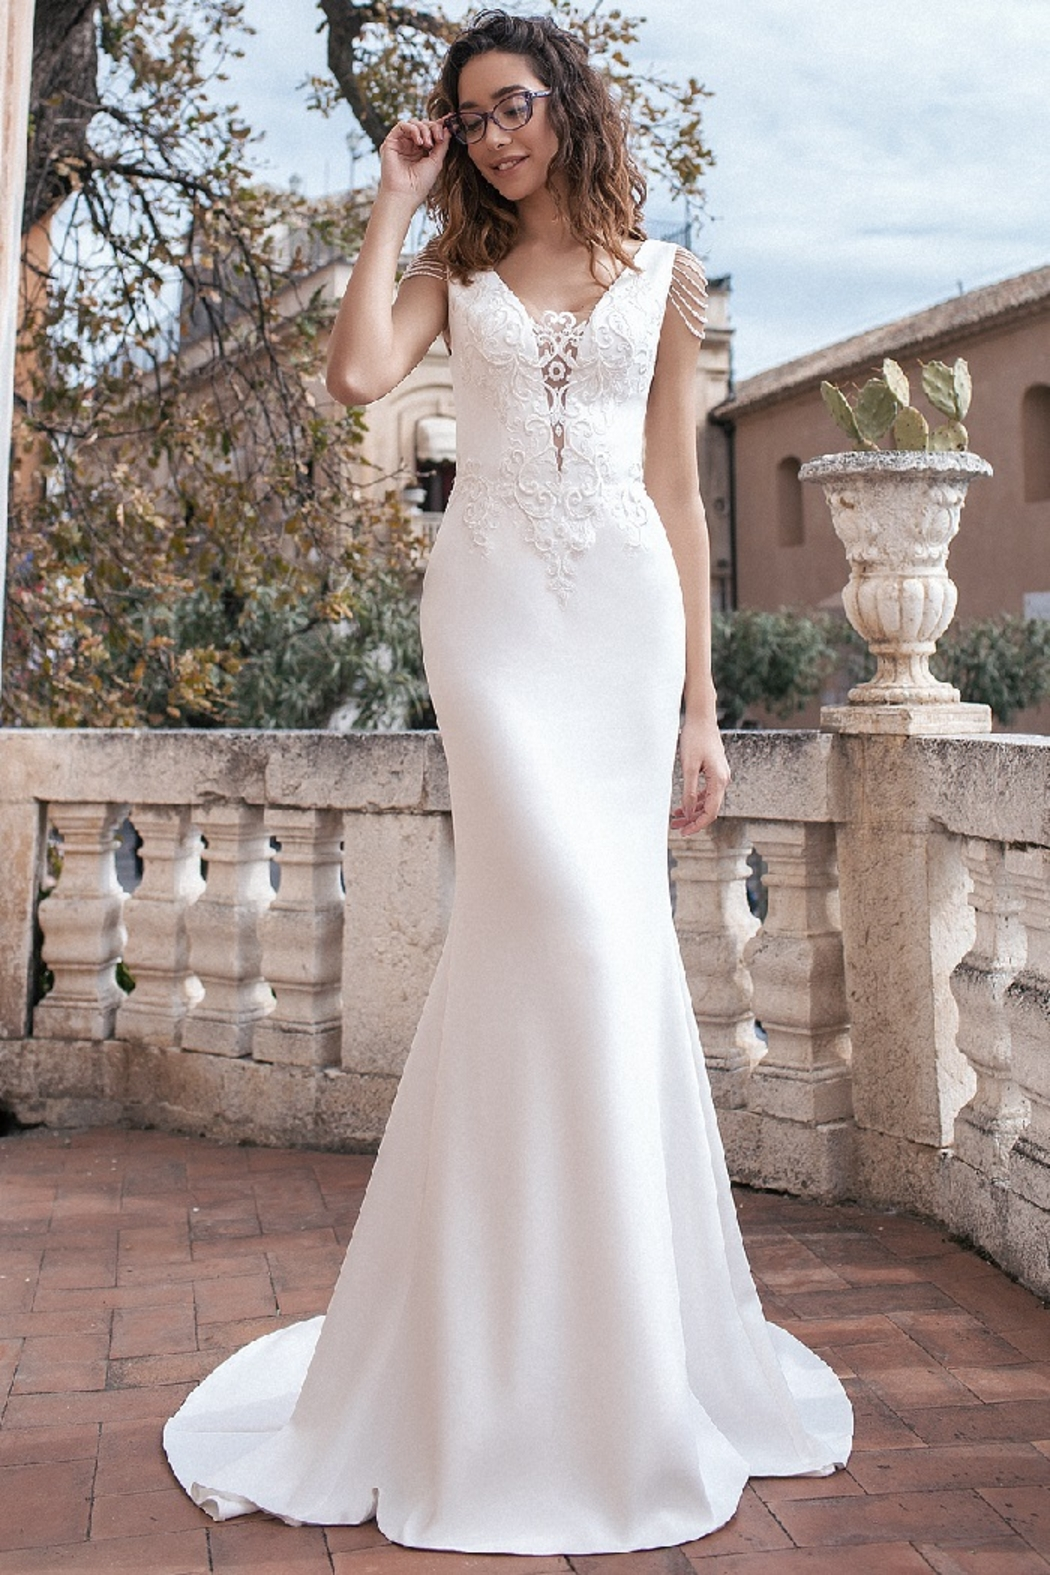 Rima Lav Ivory Pearl Off Shoulder Fit & Flare Bridal Gown - Main Image